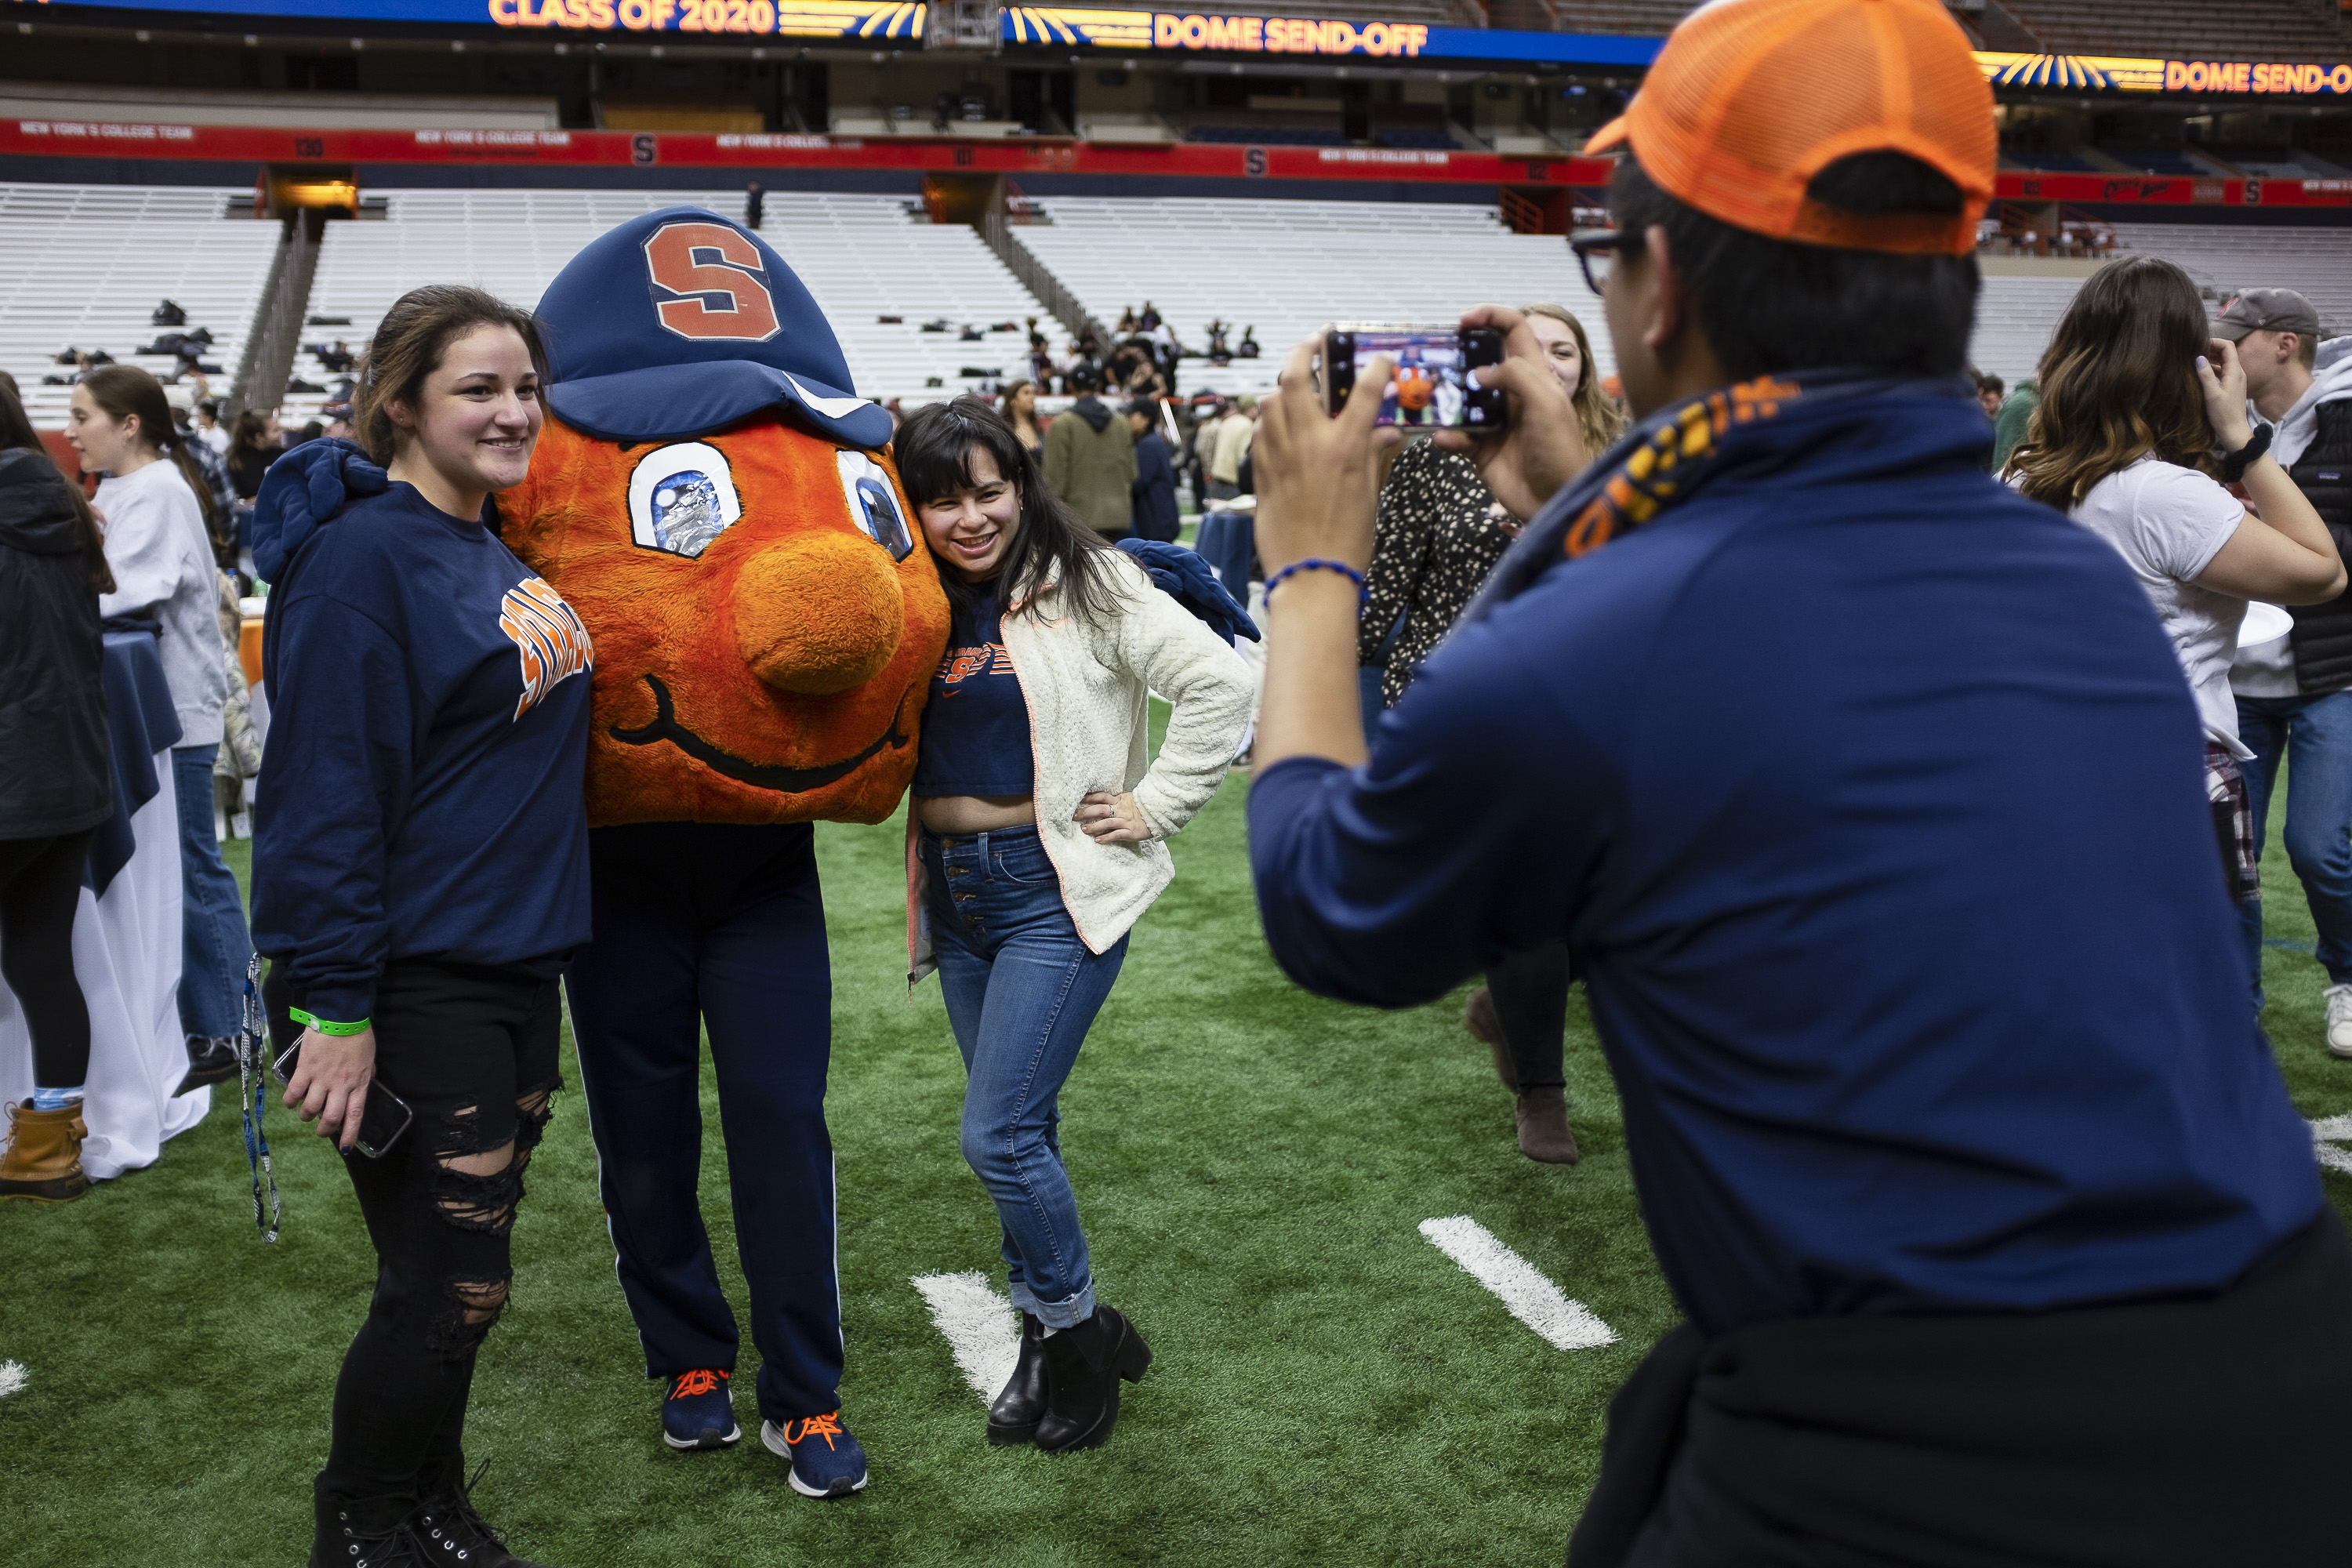 Students had the oppurtunity to mingle with another and with Otto the Orange.